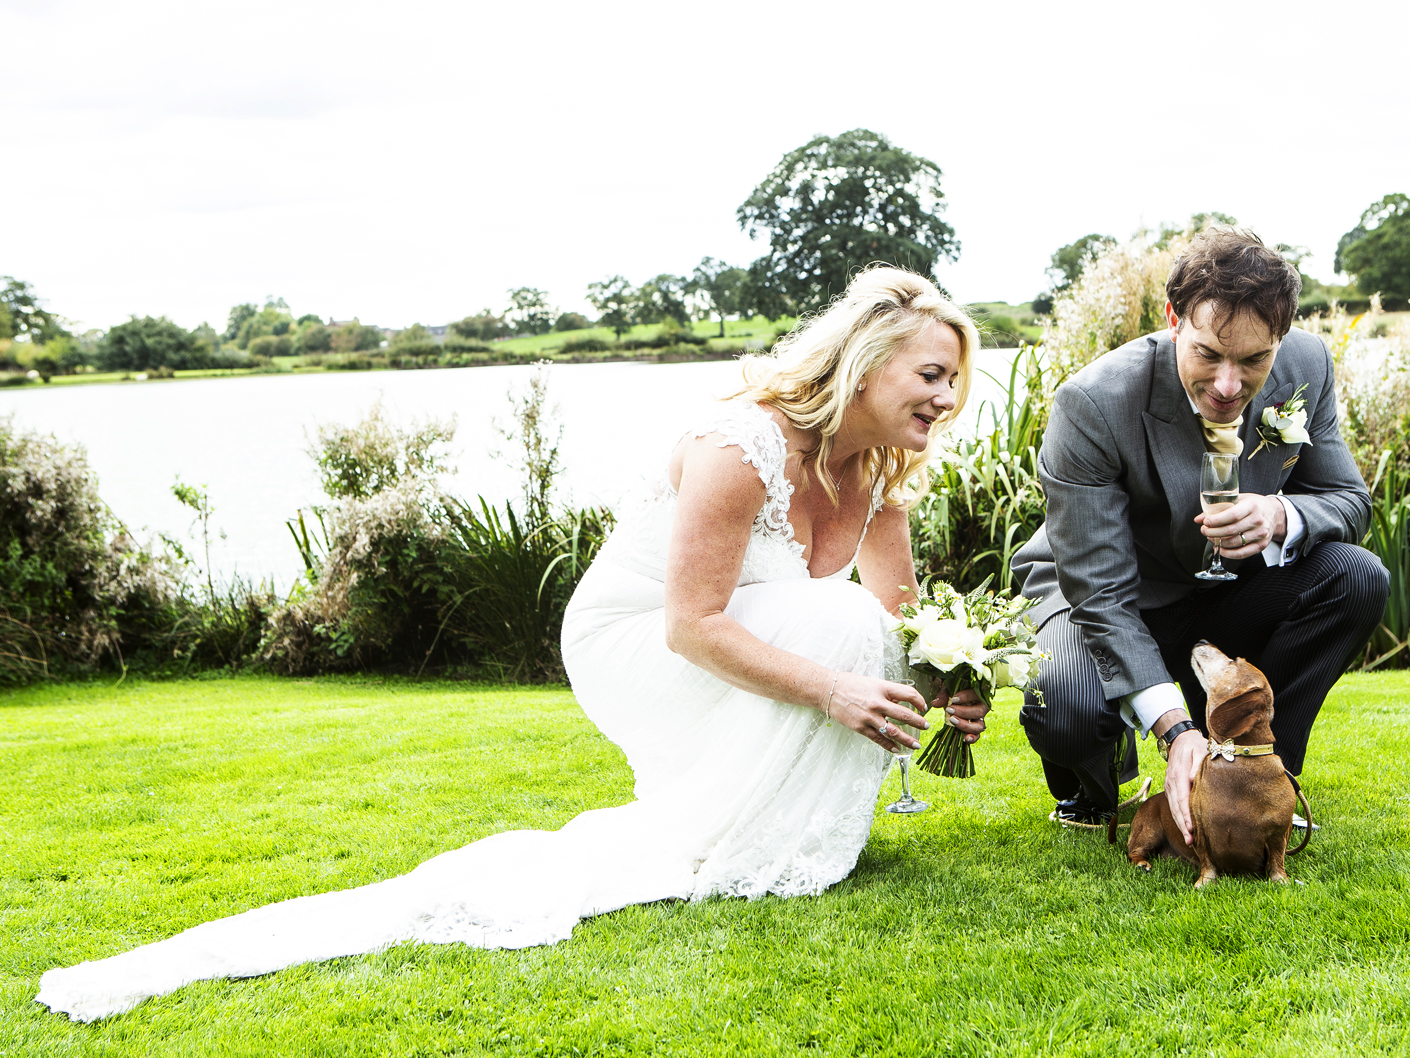 wedding-photographers-at-sandhole-oak-bard-congleton-cheshire